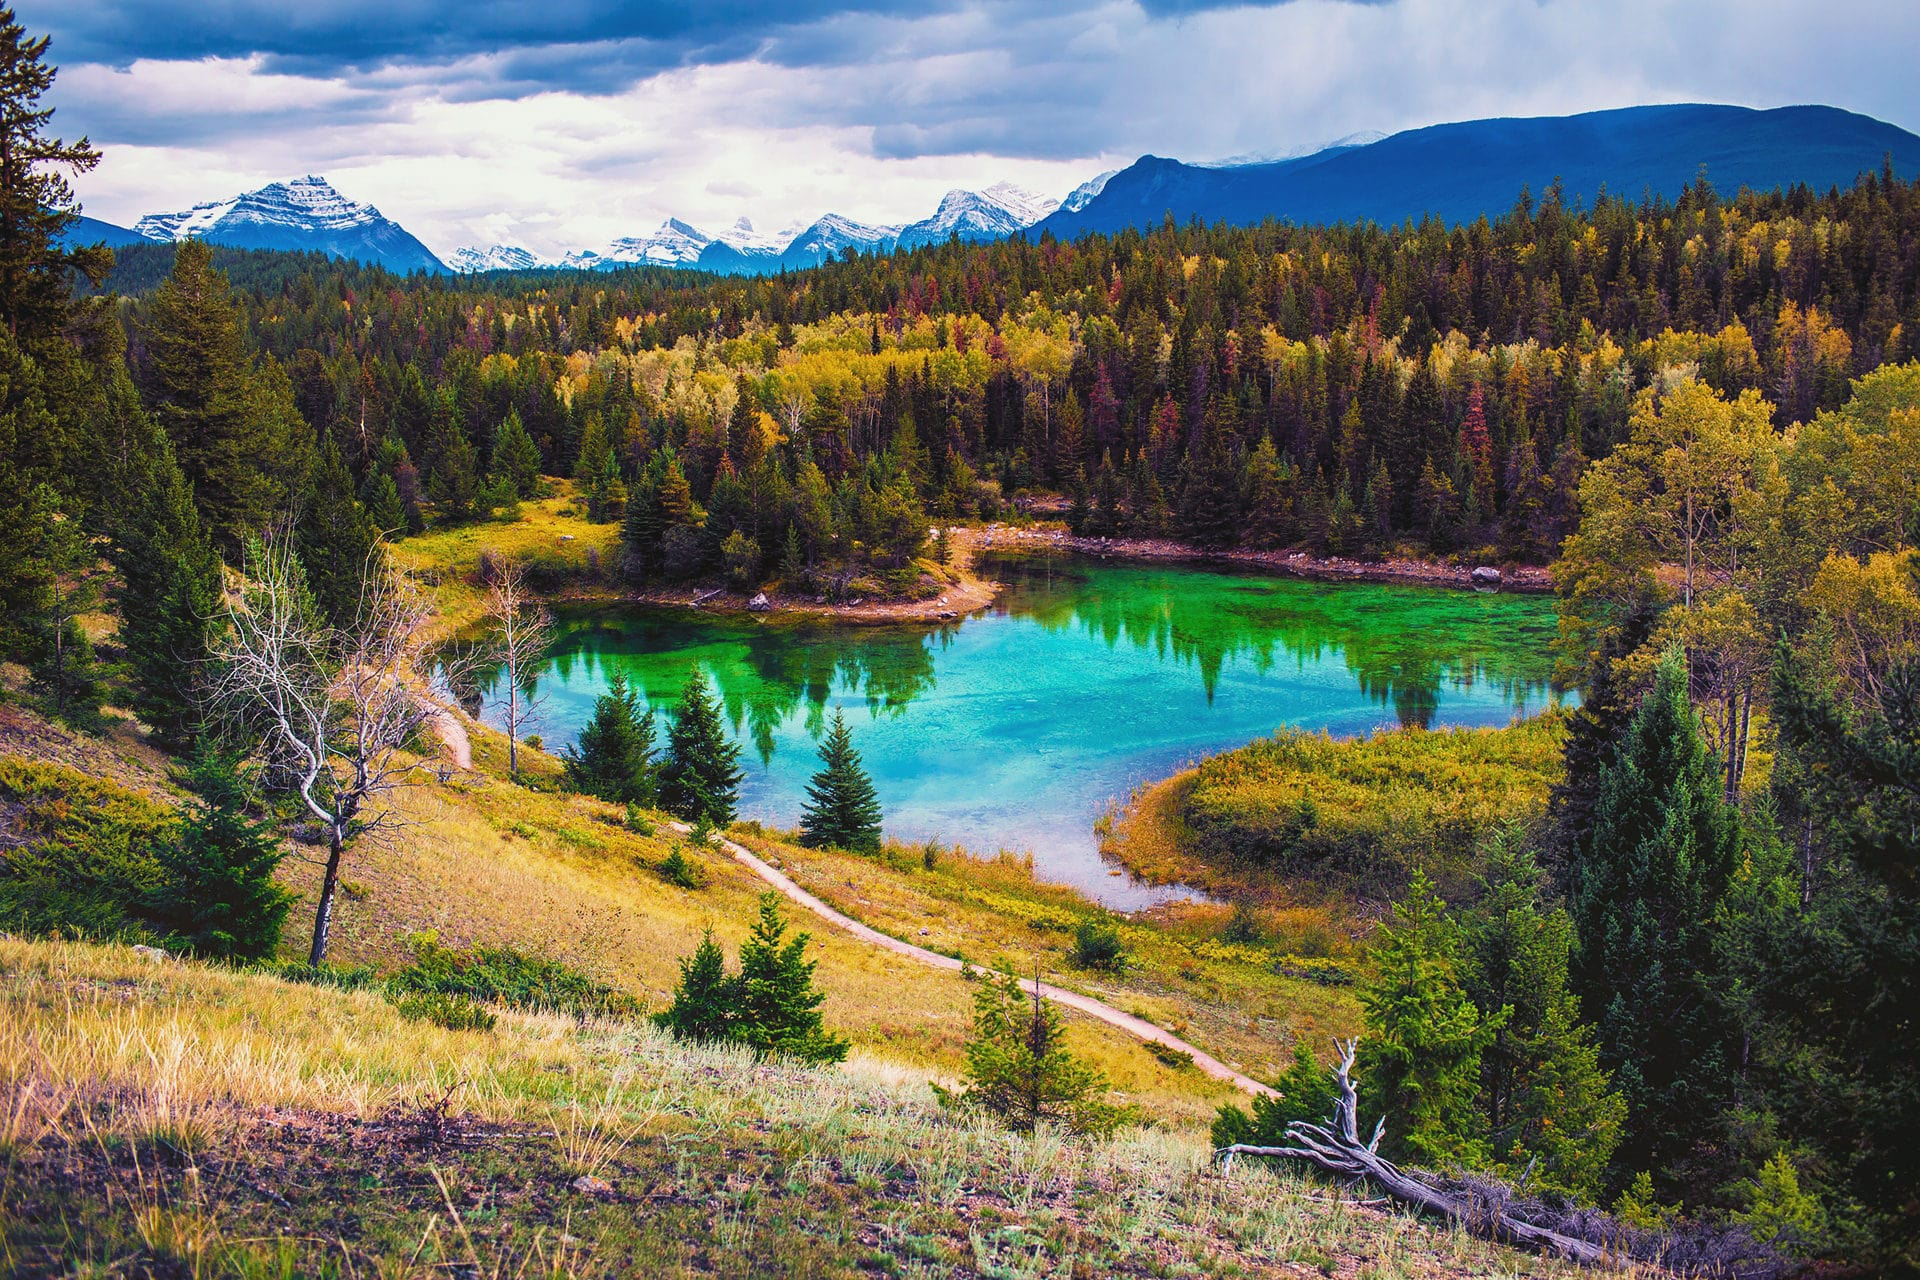 Turquoise lake surrounded by glacial capped mountains at valley of the five lakes in Jasper National Park